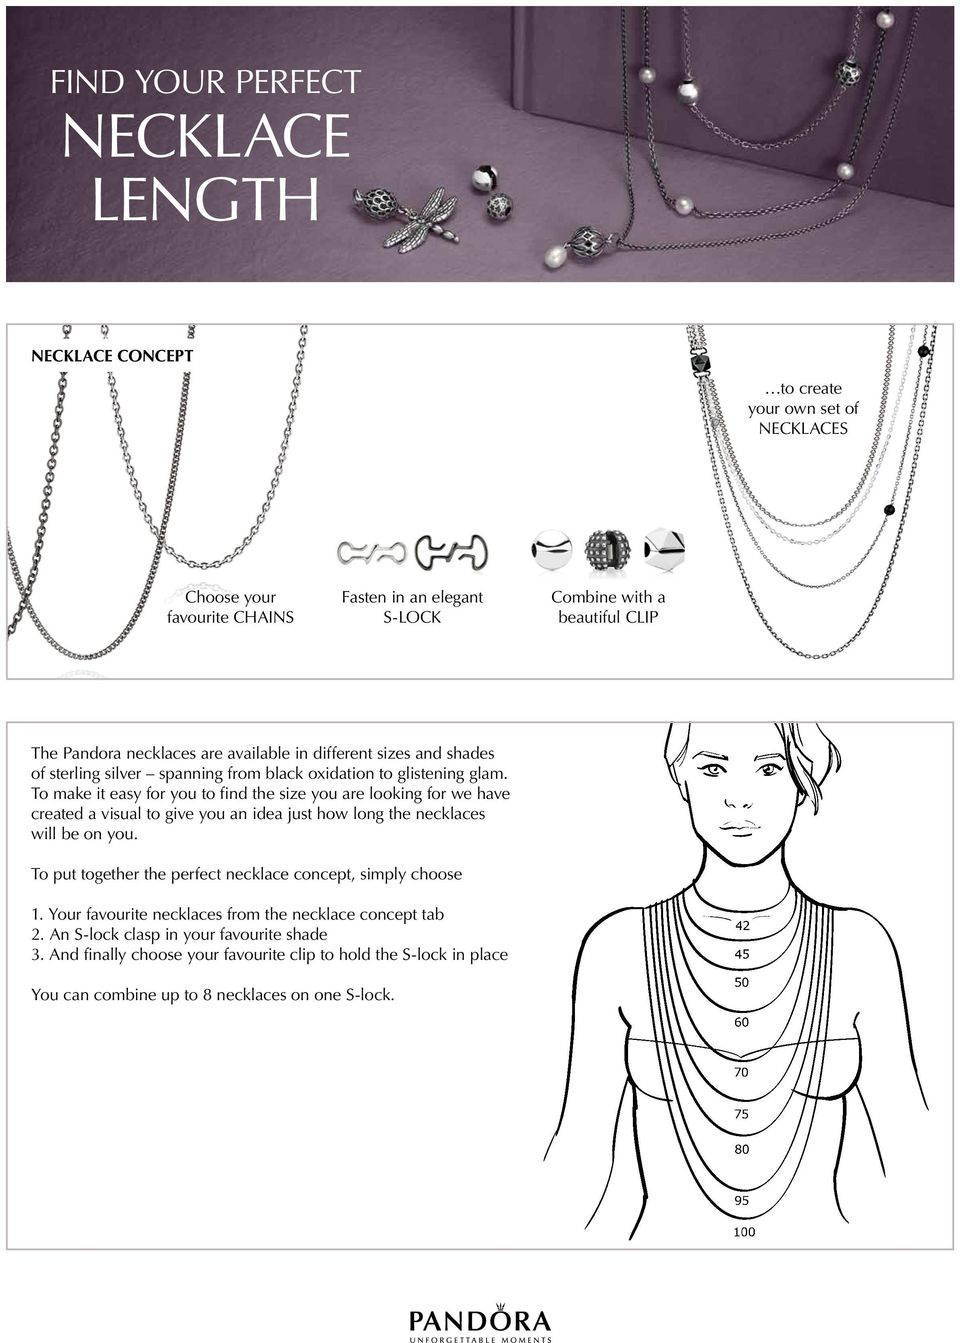 To make it easy for you to find the size you are looking for we have created a visual to give you an idea just how long the necklaces will be on you.